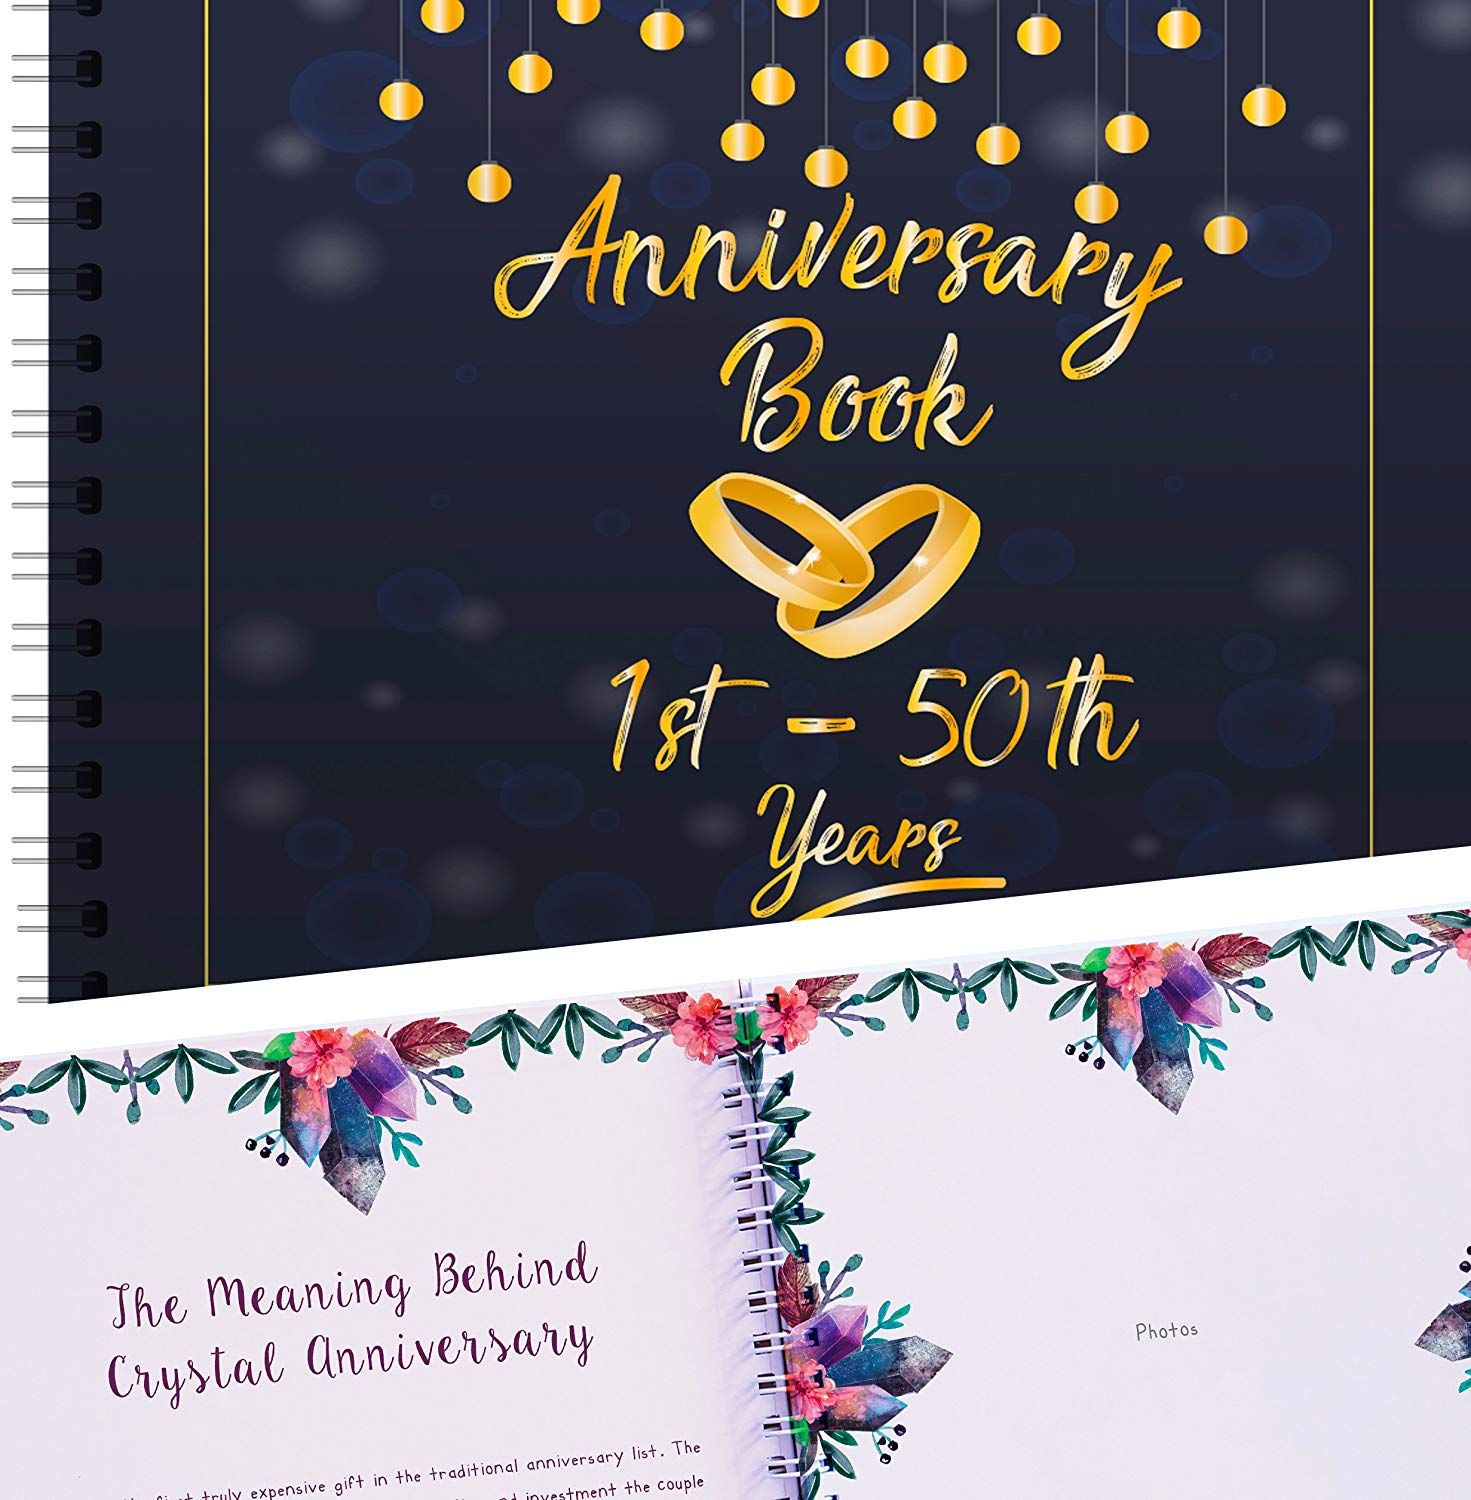 12th anniversary gifts for her under 30 unique gifts